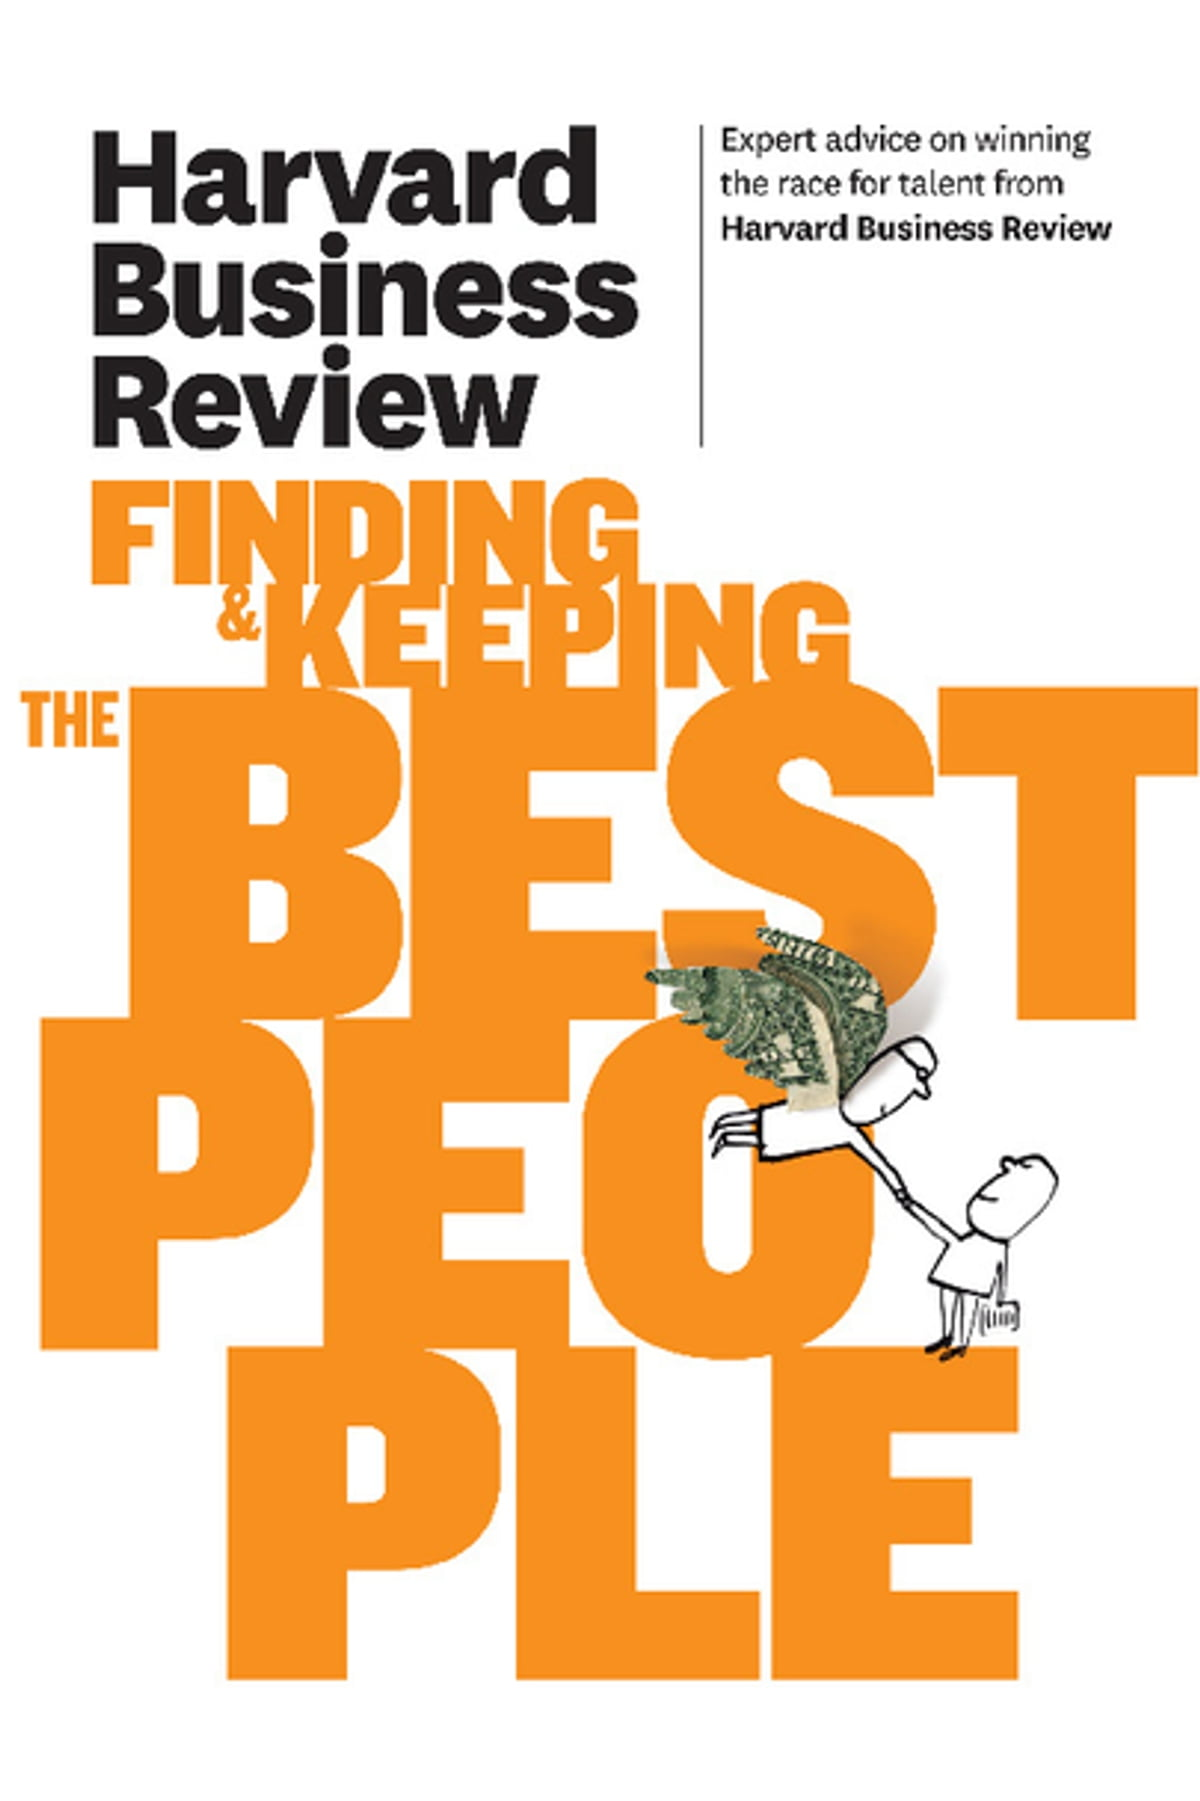 Harvard Business Review on Finding   Keeping the Best People eBook by Harvard  Business Review - 9781422172001  7585090e33f